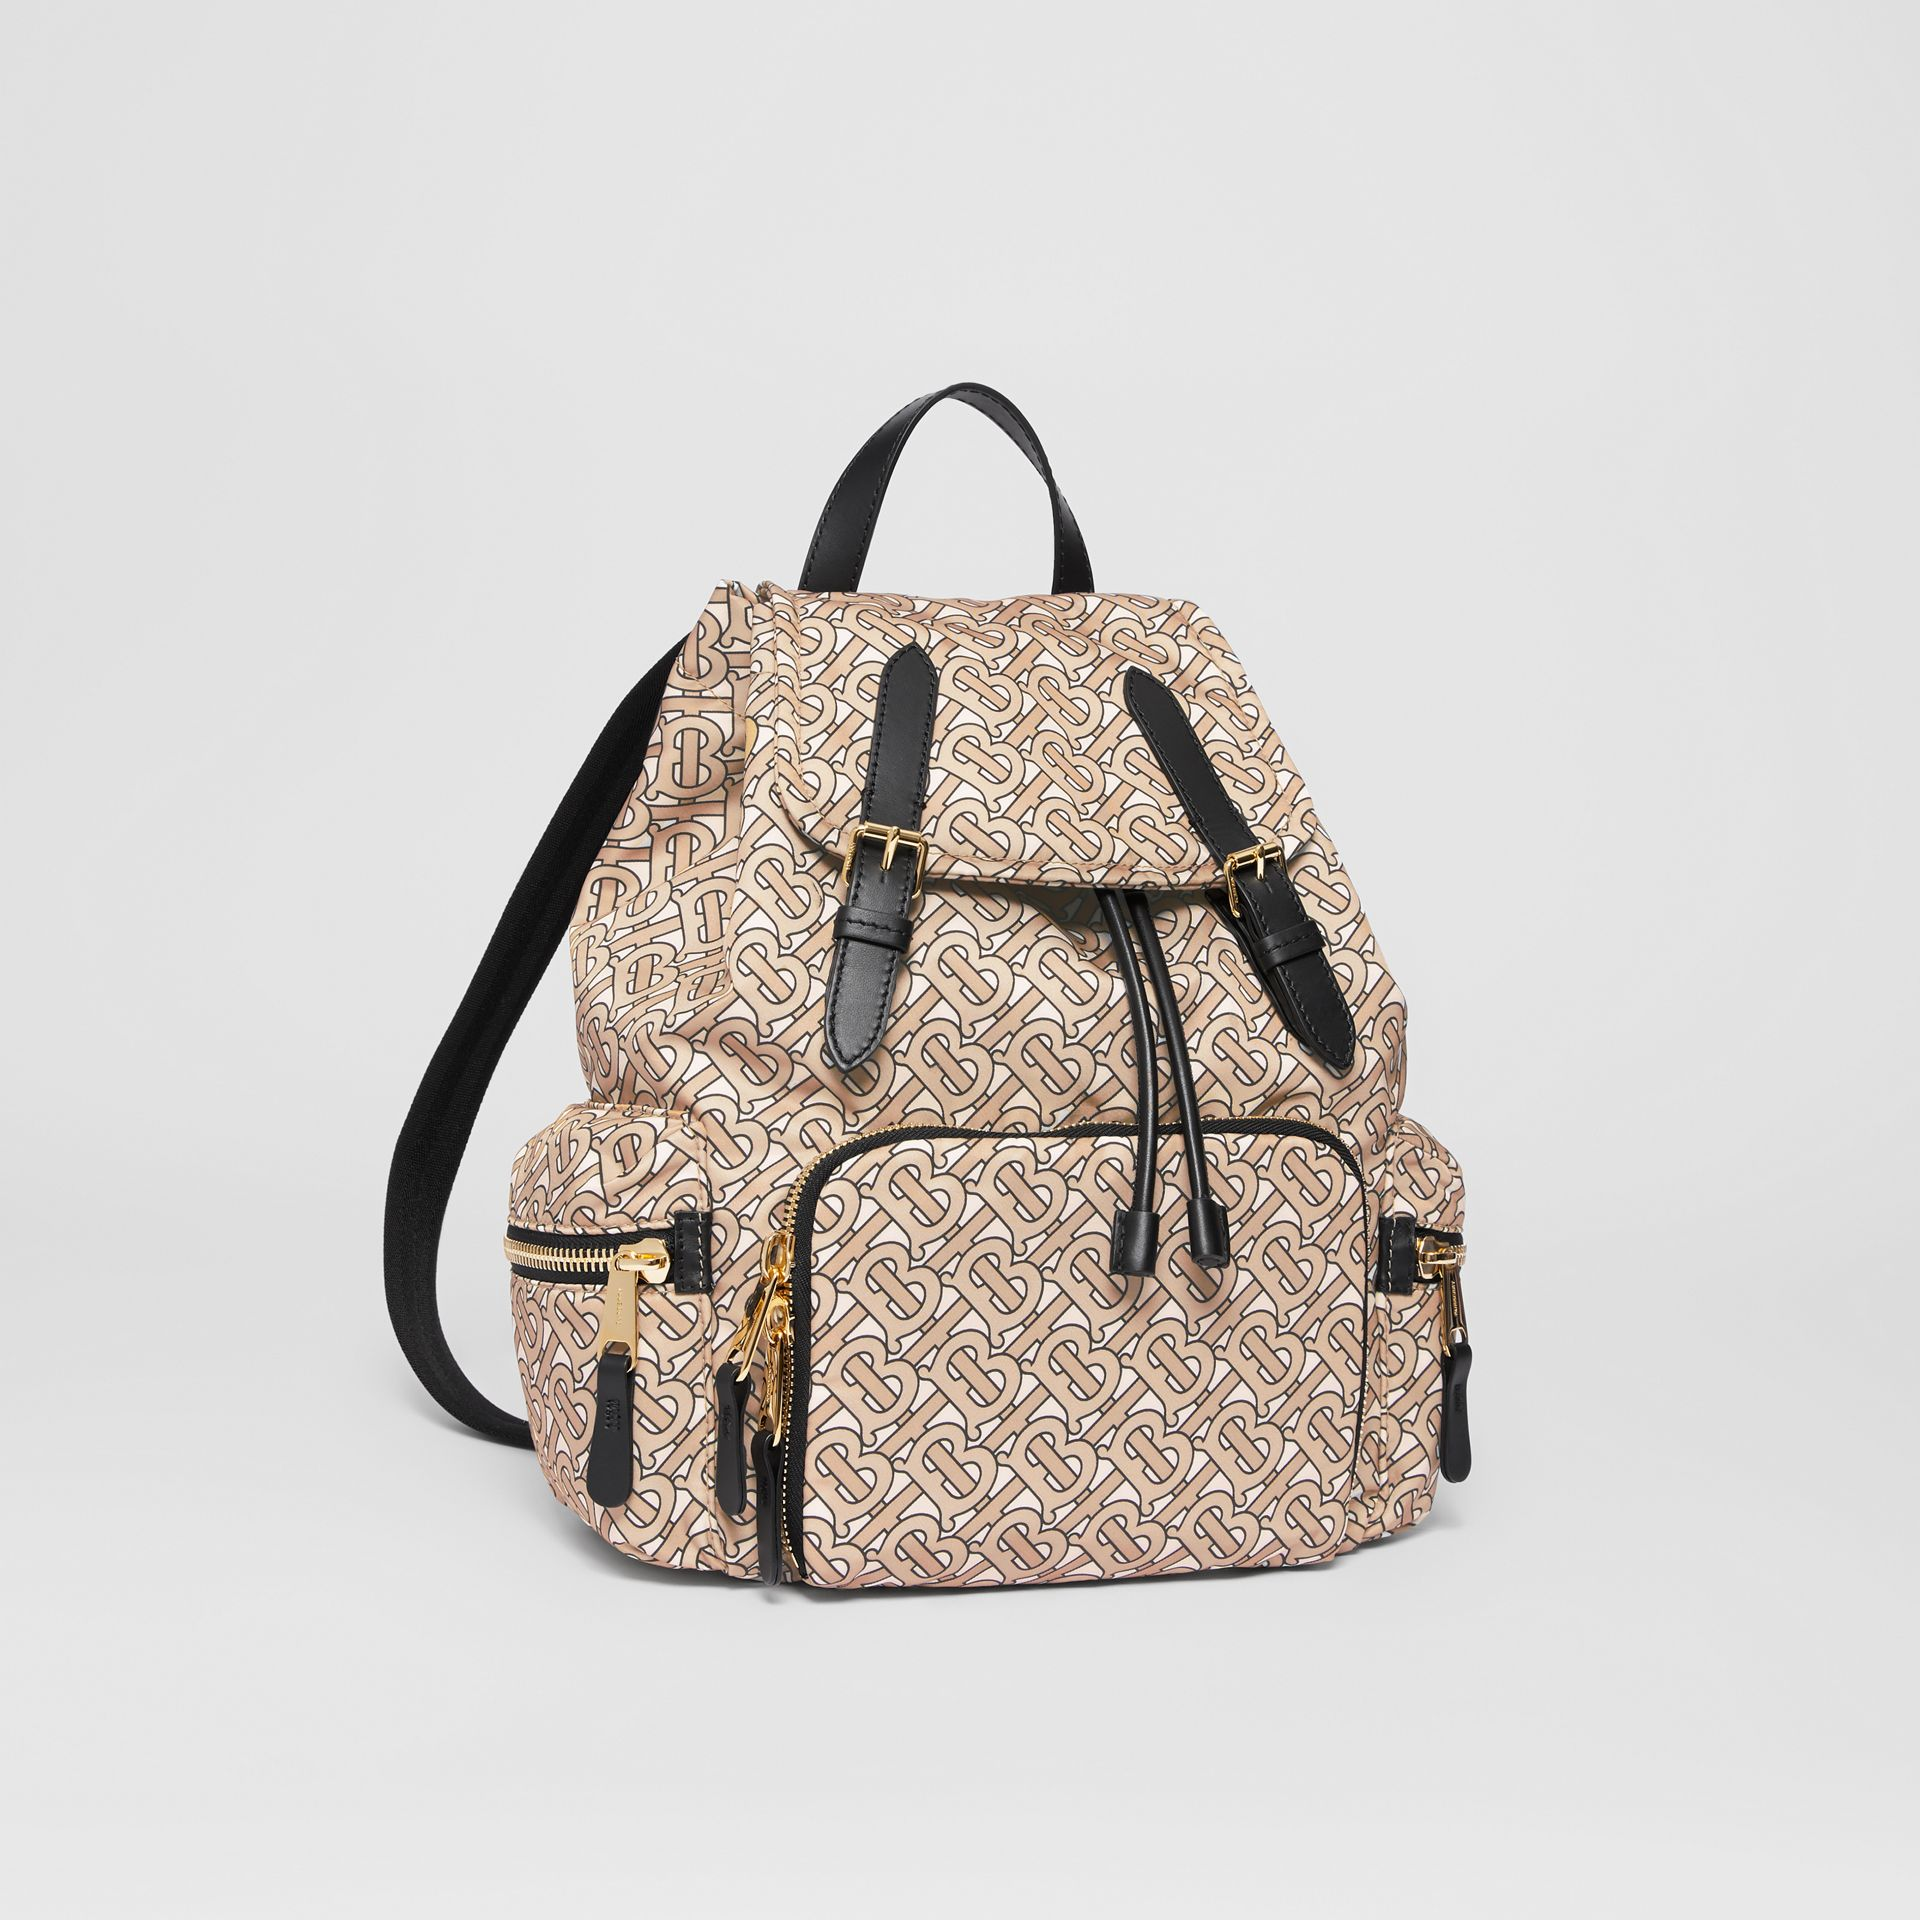 Sac The Rucksack moyen en nylon Monogram (Beige) - Femme | Burberry - photo de la galerie 6